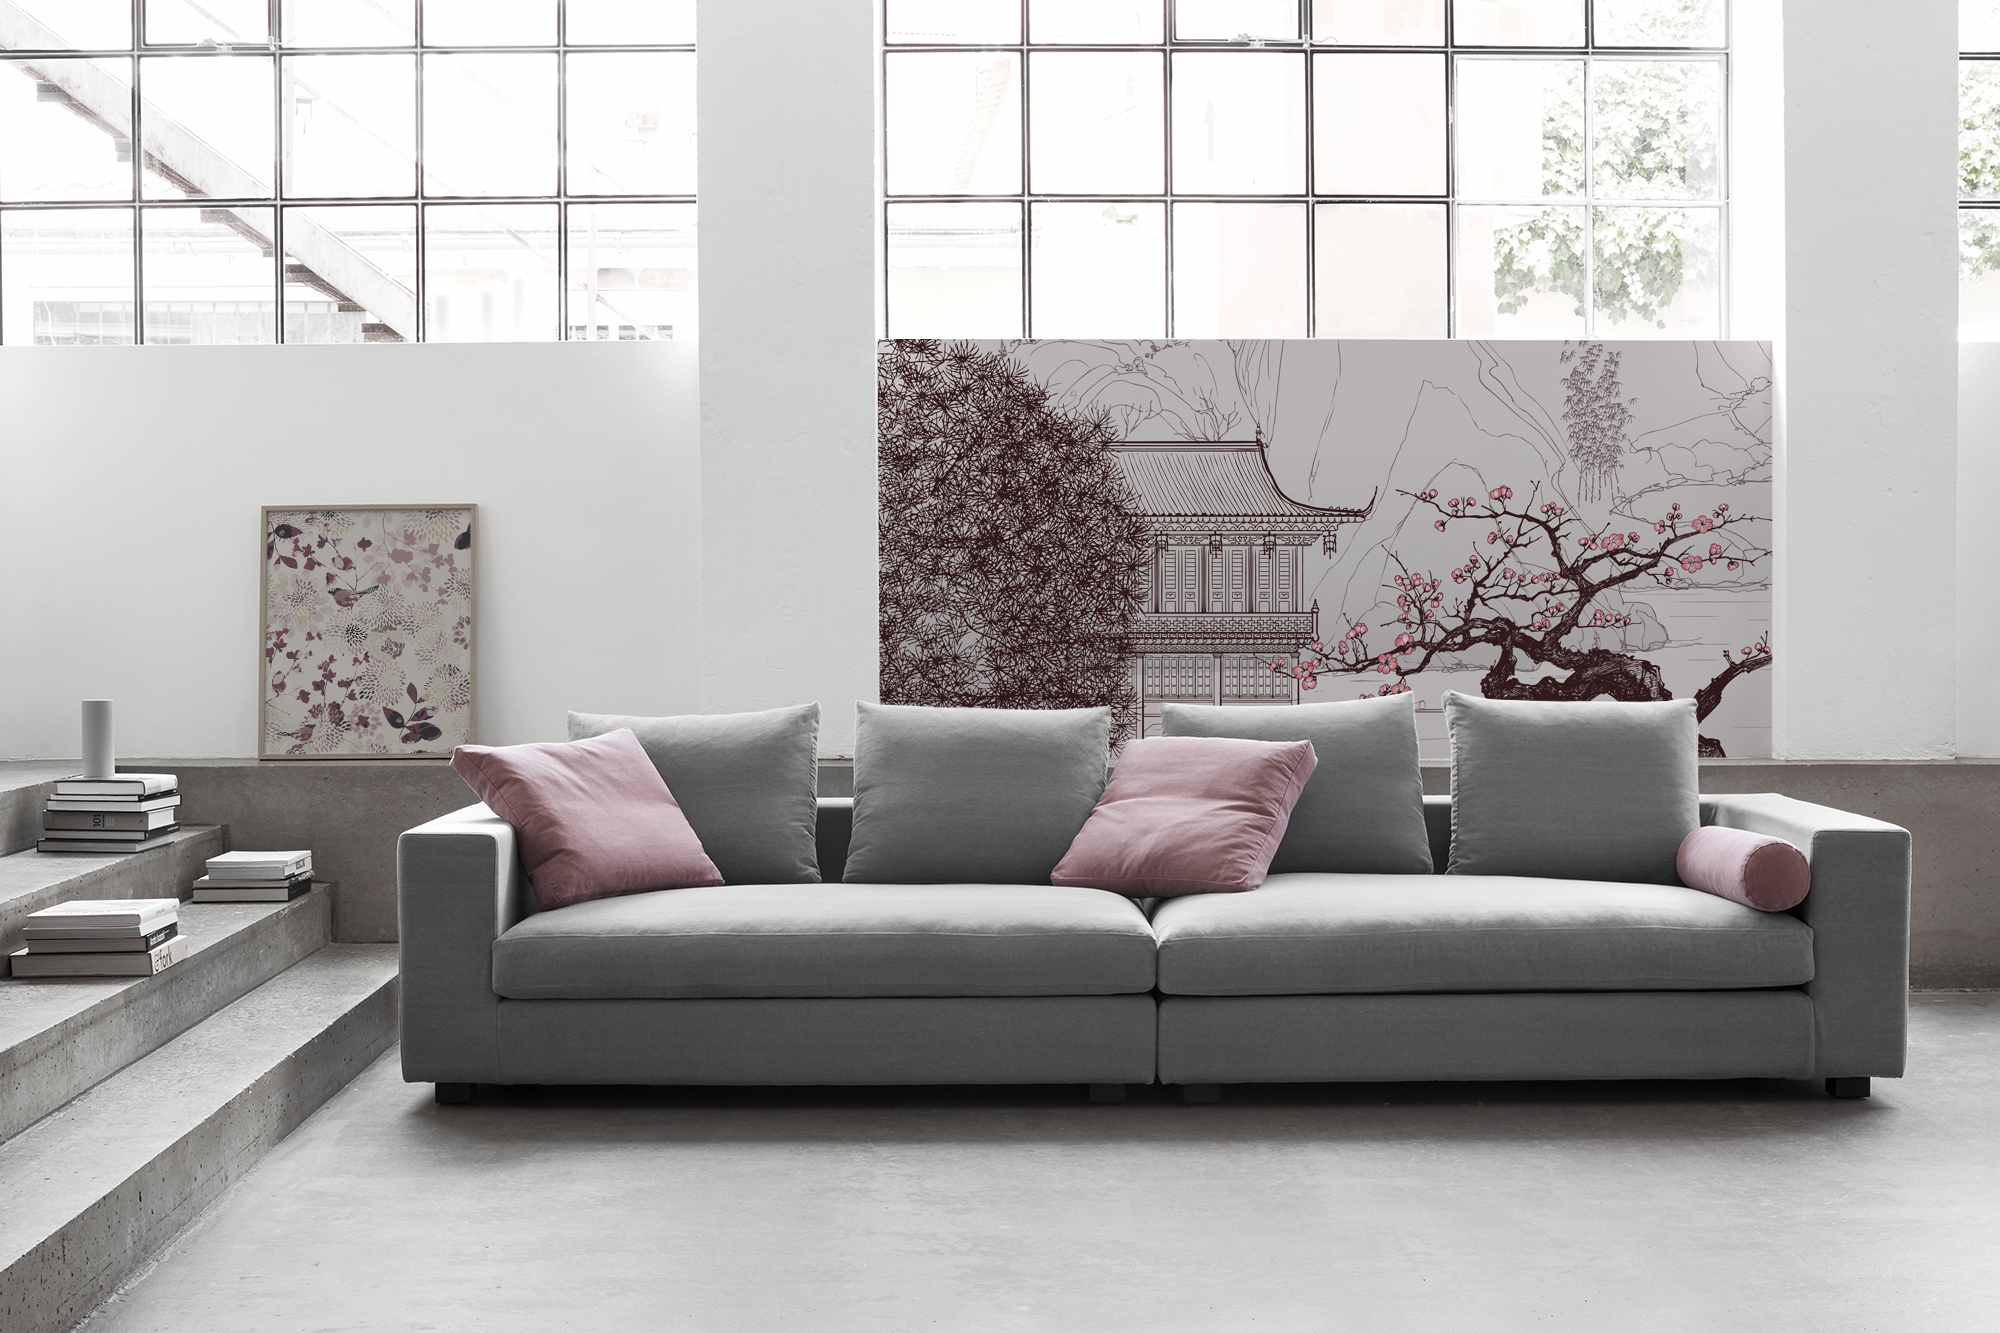 Chinese Cherry • Living room - Oriental - Flowers and plants - Landscapes - Wall Murals - Posters